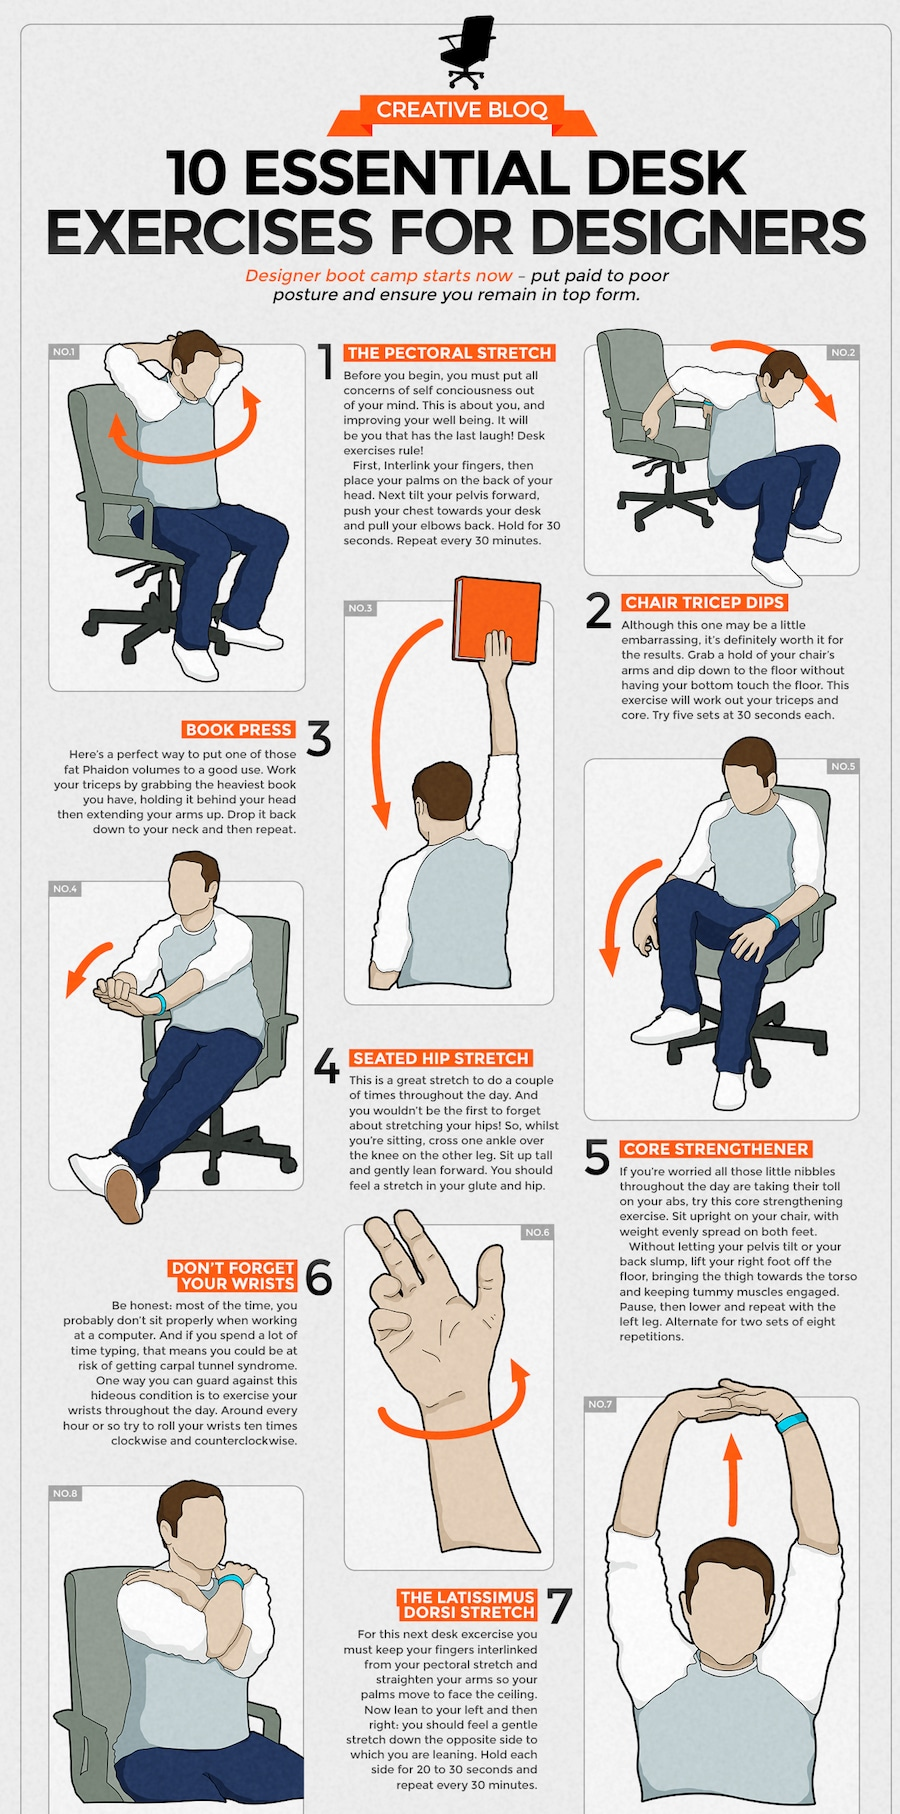 workplace information desk exercises visual data